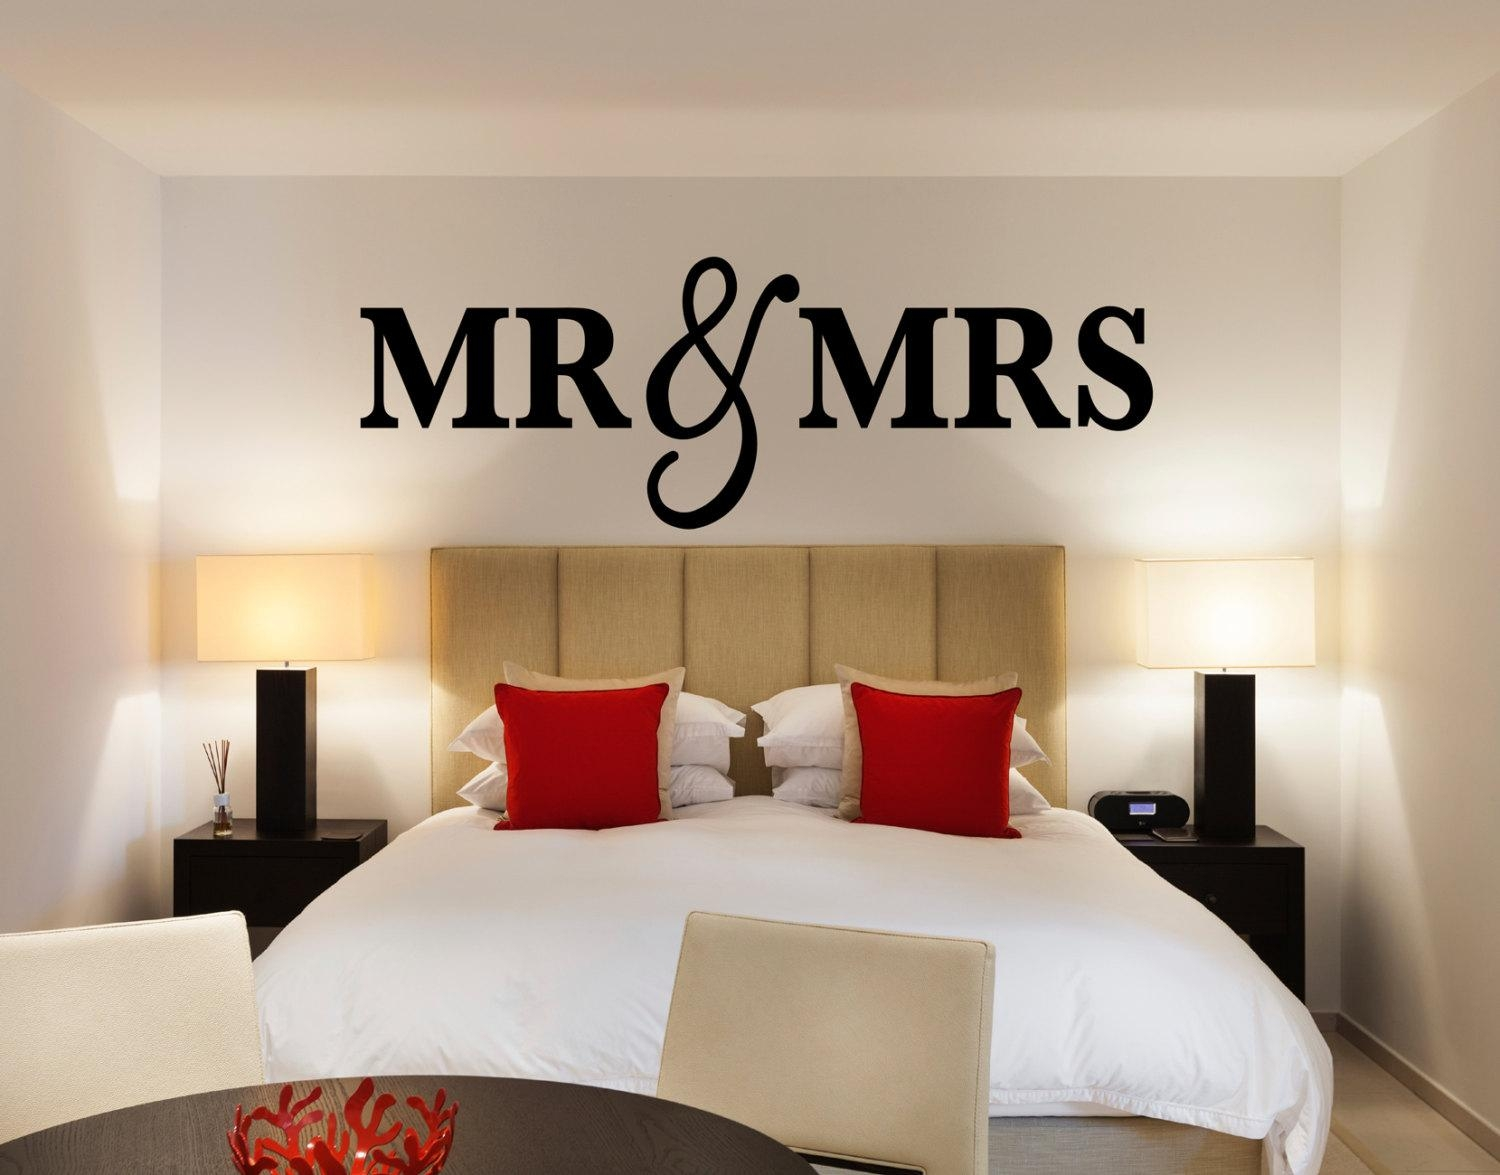 Mr & Mrs Wall Sign For Bedroom Decor Mr And Mrs Sign For Throughout Mr And Mrs Wall Art (Image 5 of 20)